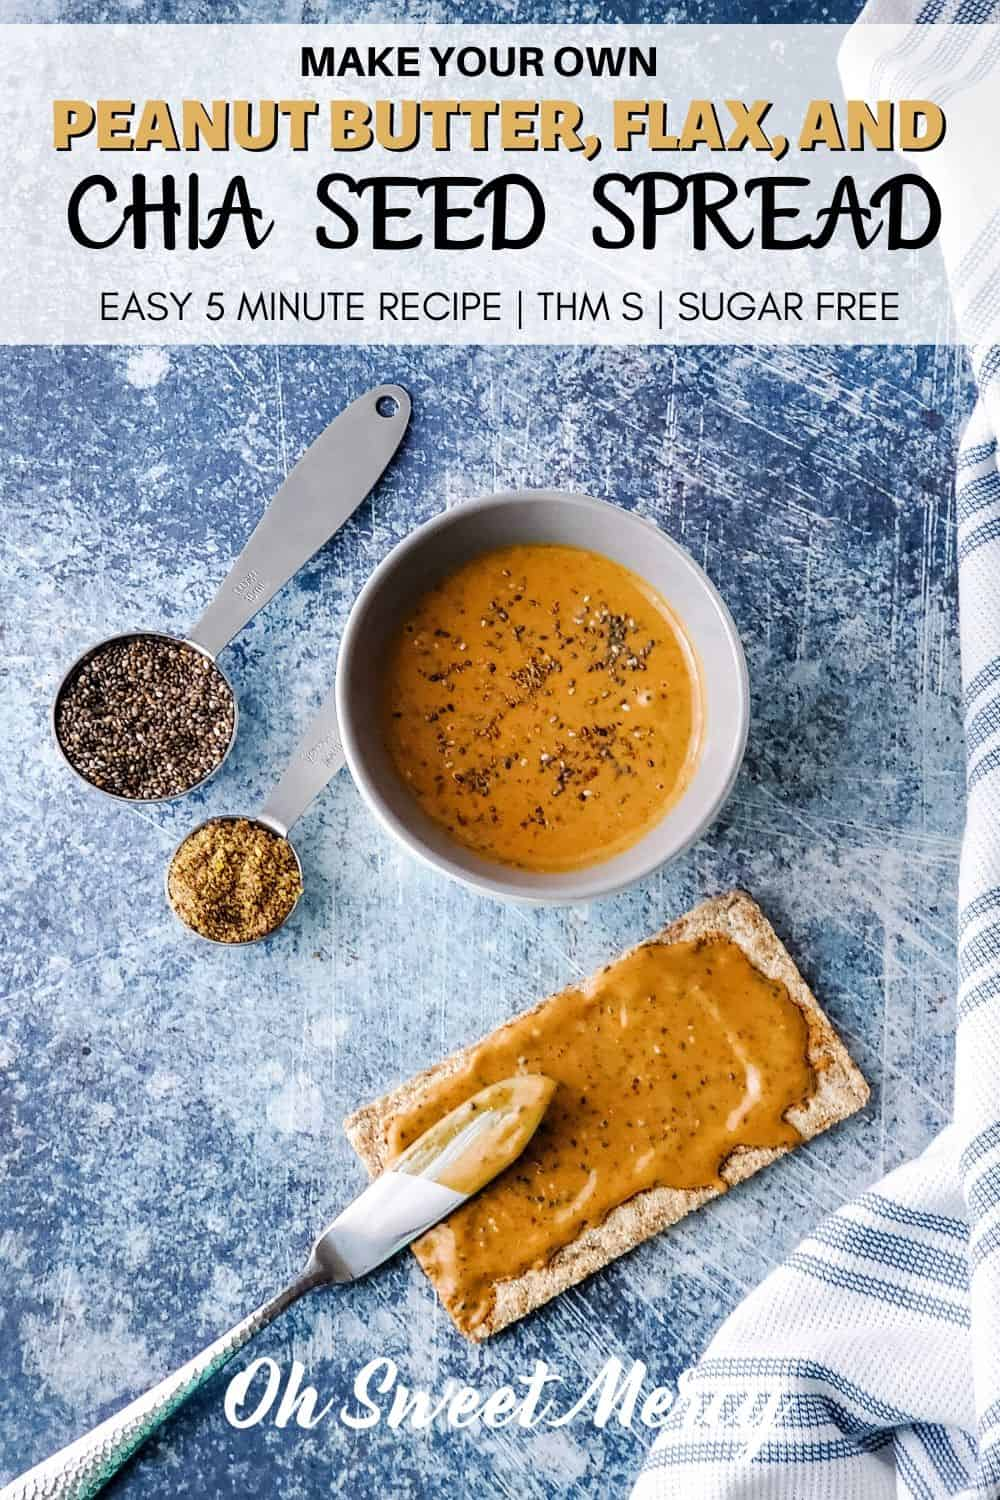 Make your own Trader Joe's or Aldi peanut butter with flax and chia seeds with this super easy 5 minute recipe! A healthy, delicious peanut butter spread great for celery, sandwiches, smoothies, and more. #peanutbutter #chia #flax #lowcarb #thmsnacks